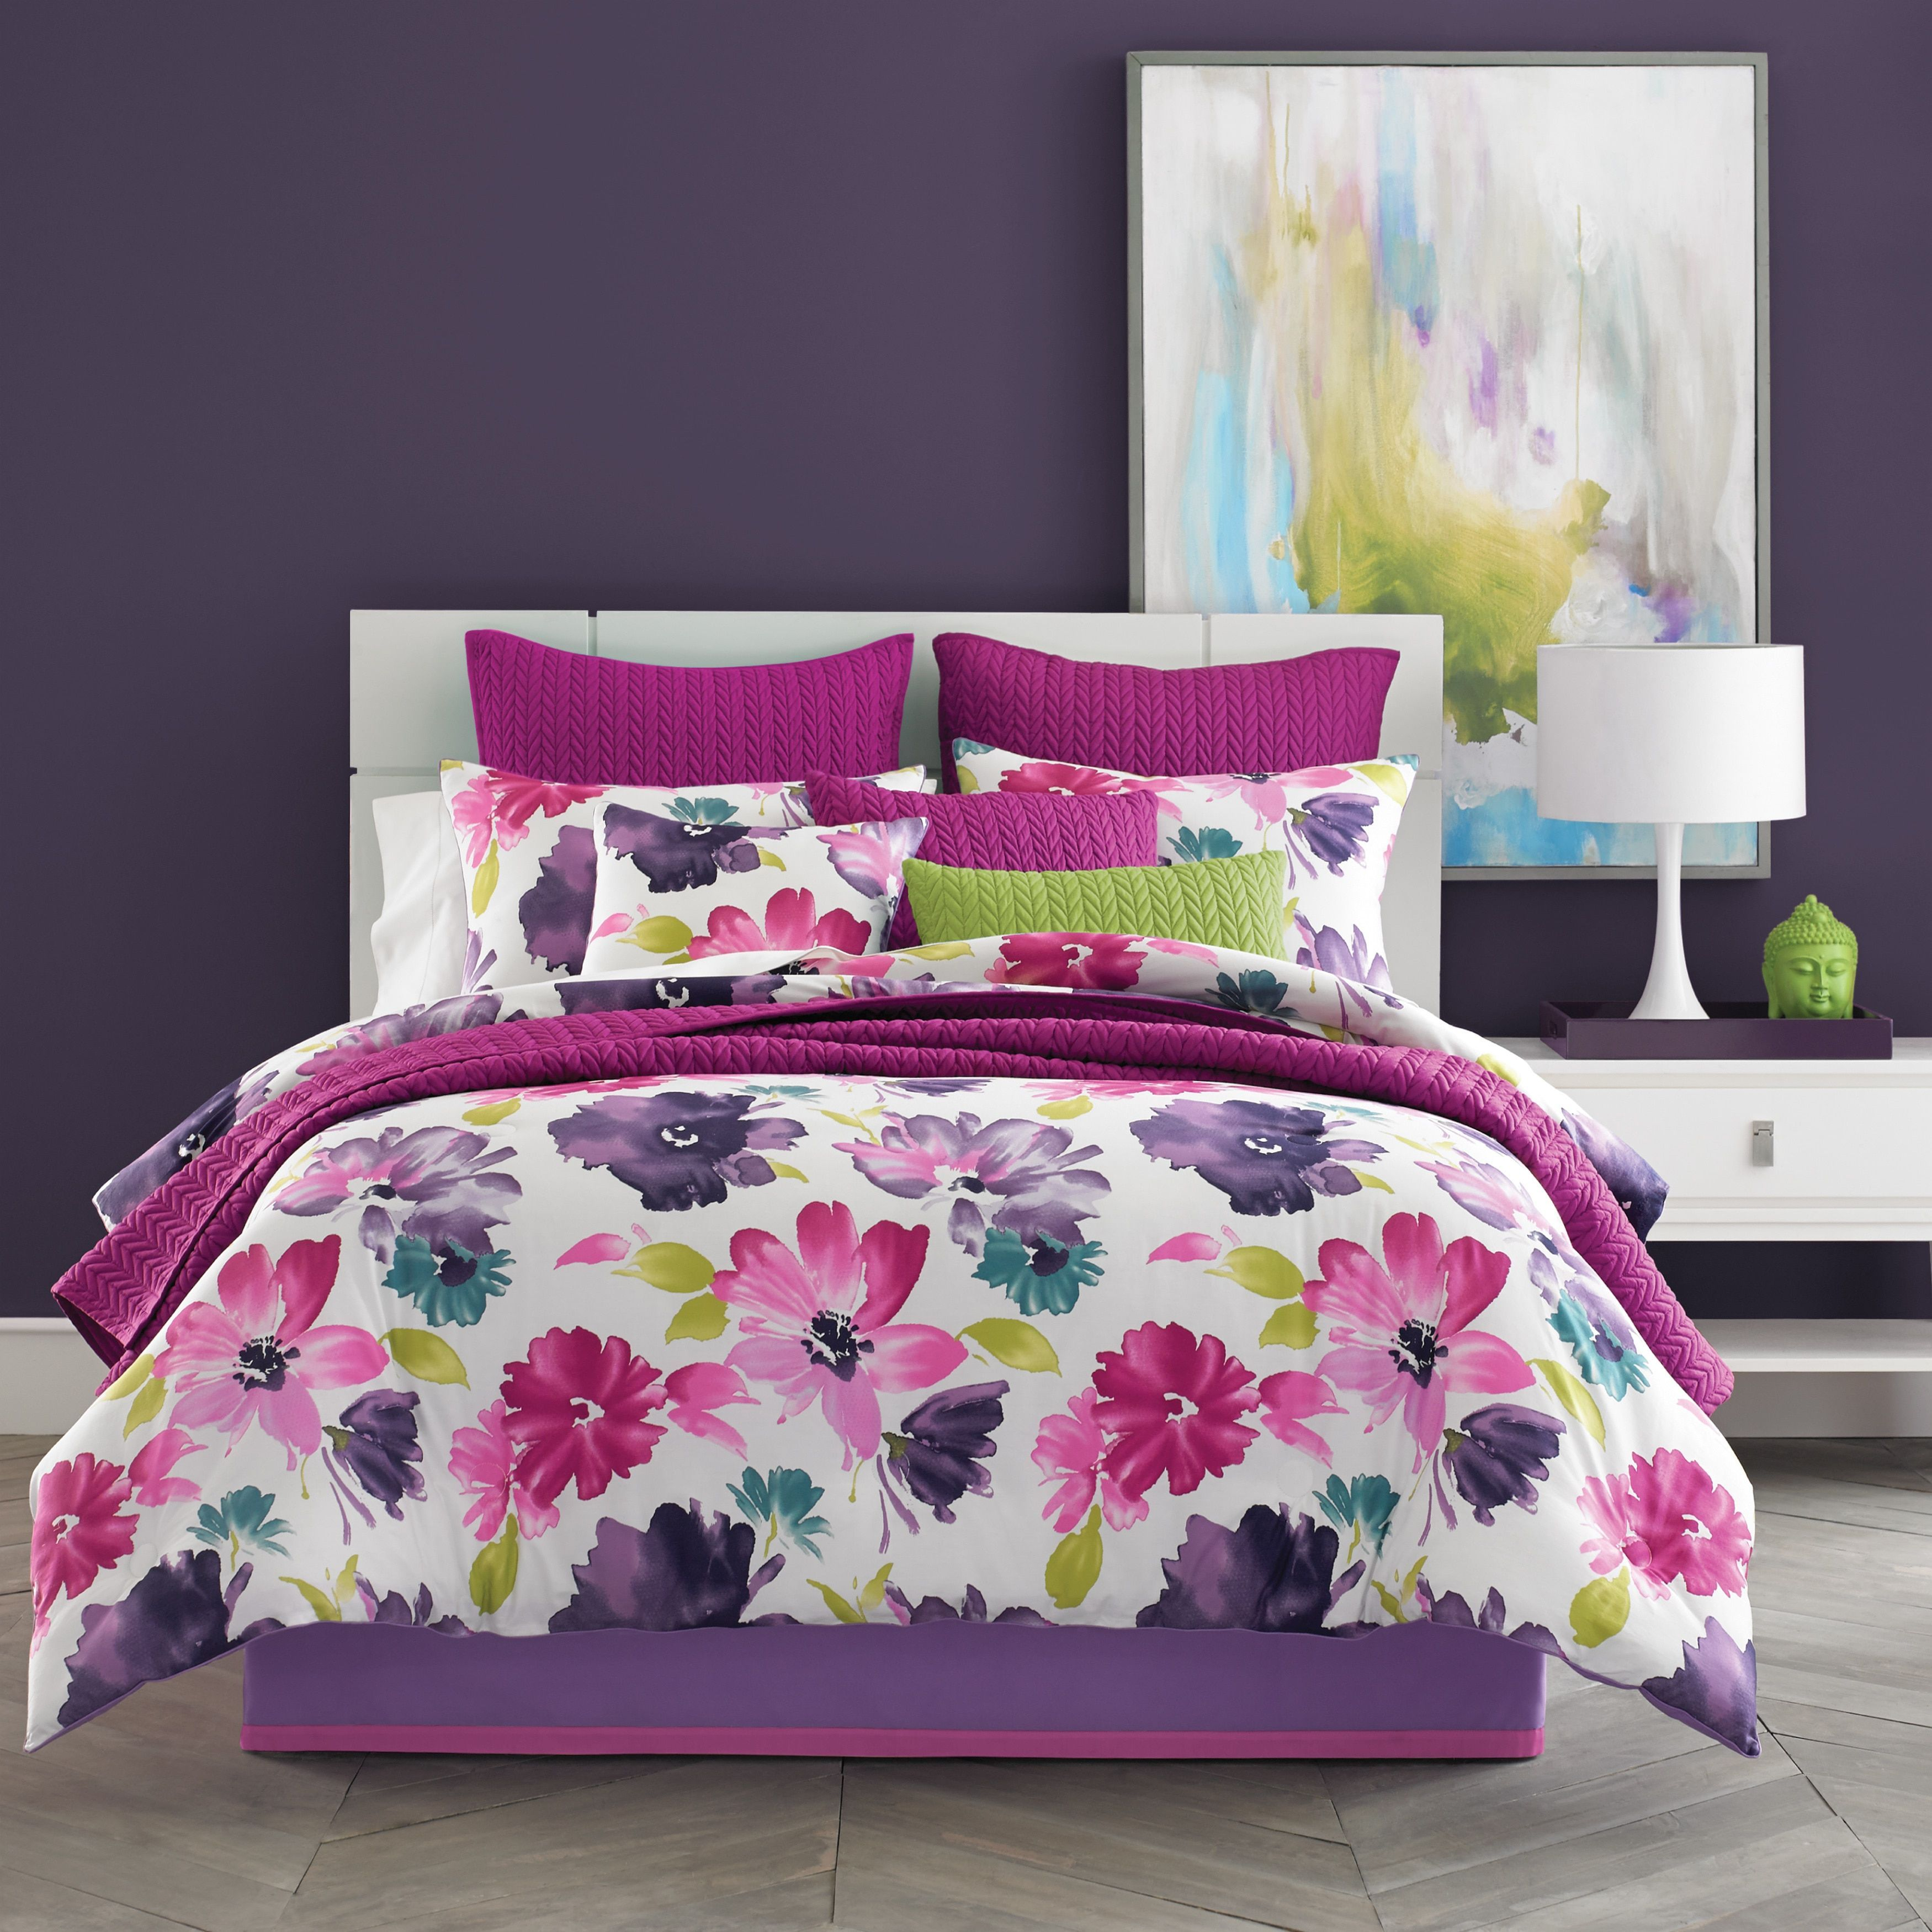 decorative twill sham twin pillow circles zone tapes quilt polka purple comforter xl set mi carly doodled itm dots includes